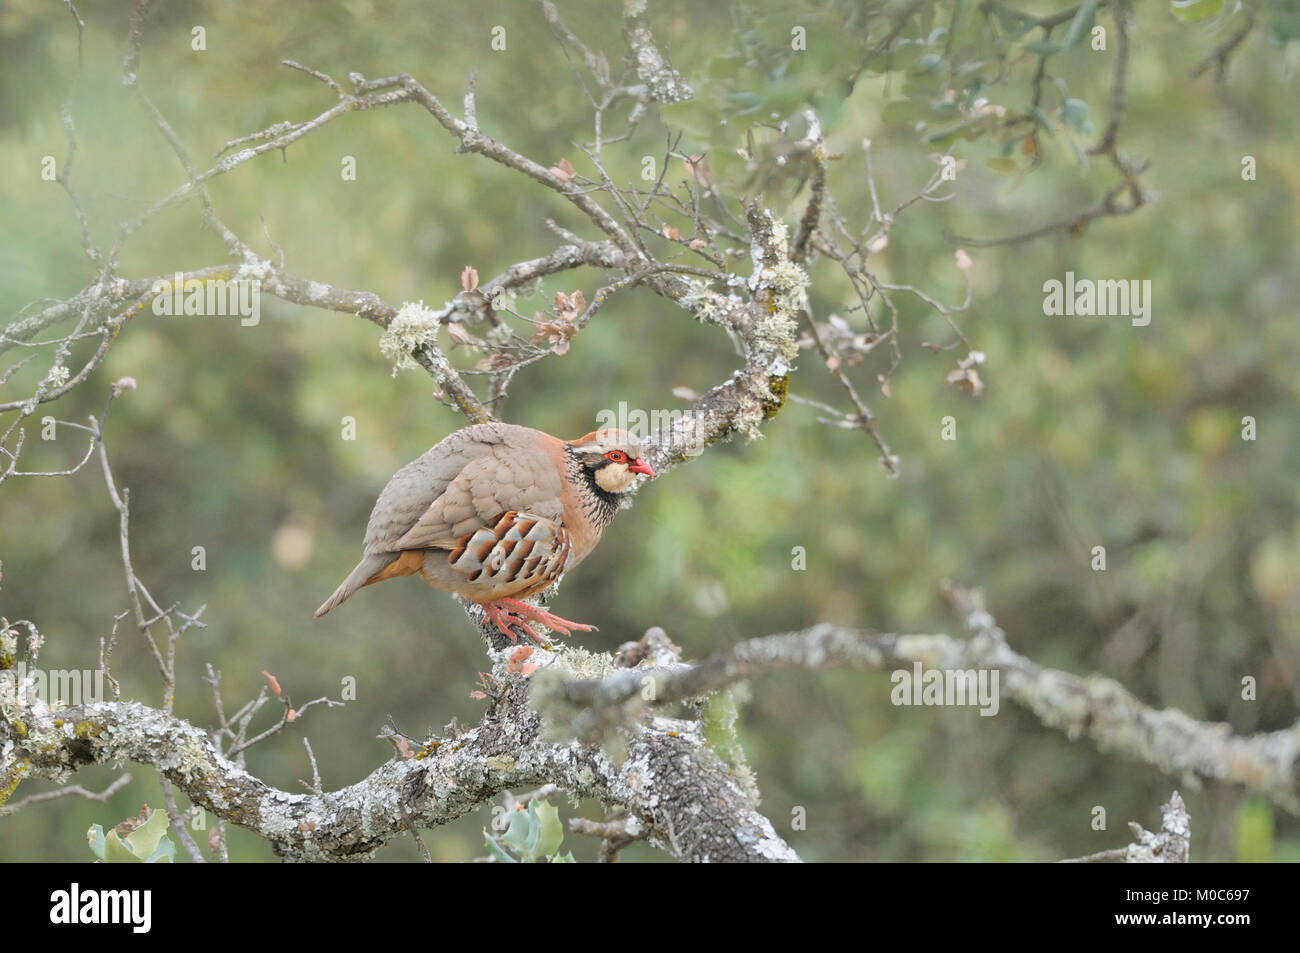 Red-legged Partridge Alectoris rufa Photographed in Spain Stock Photo